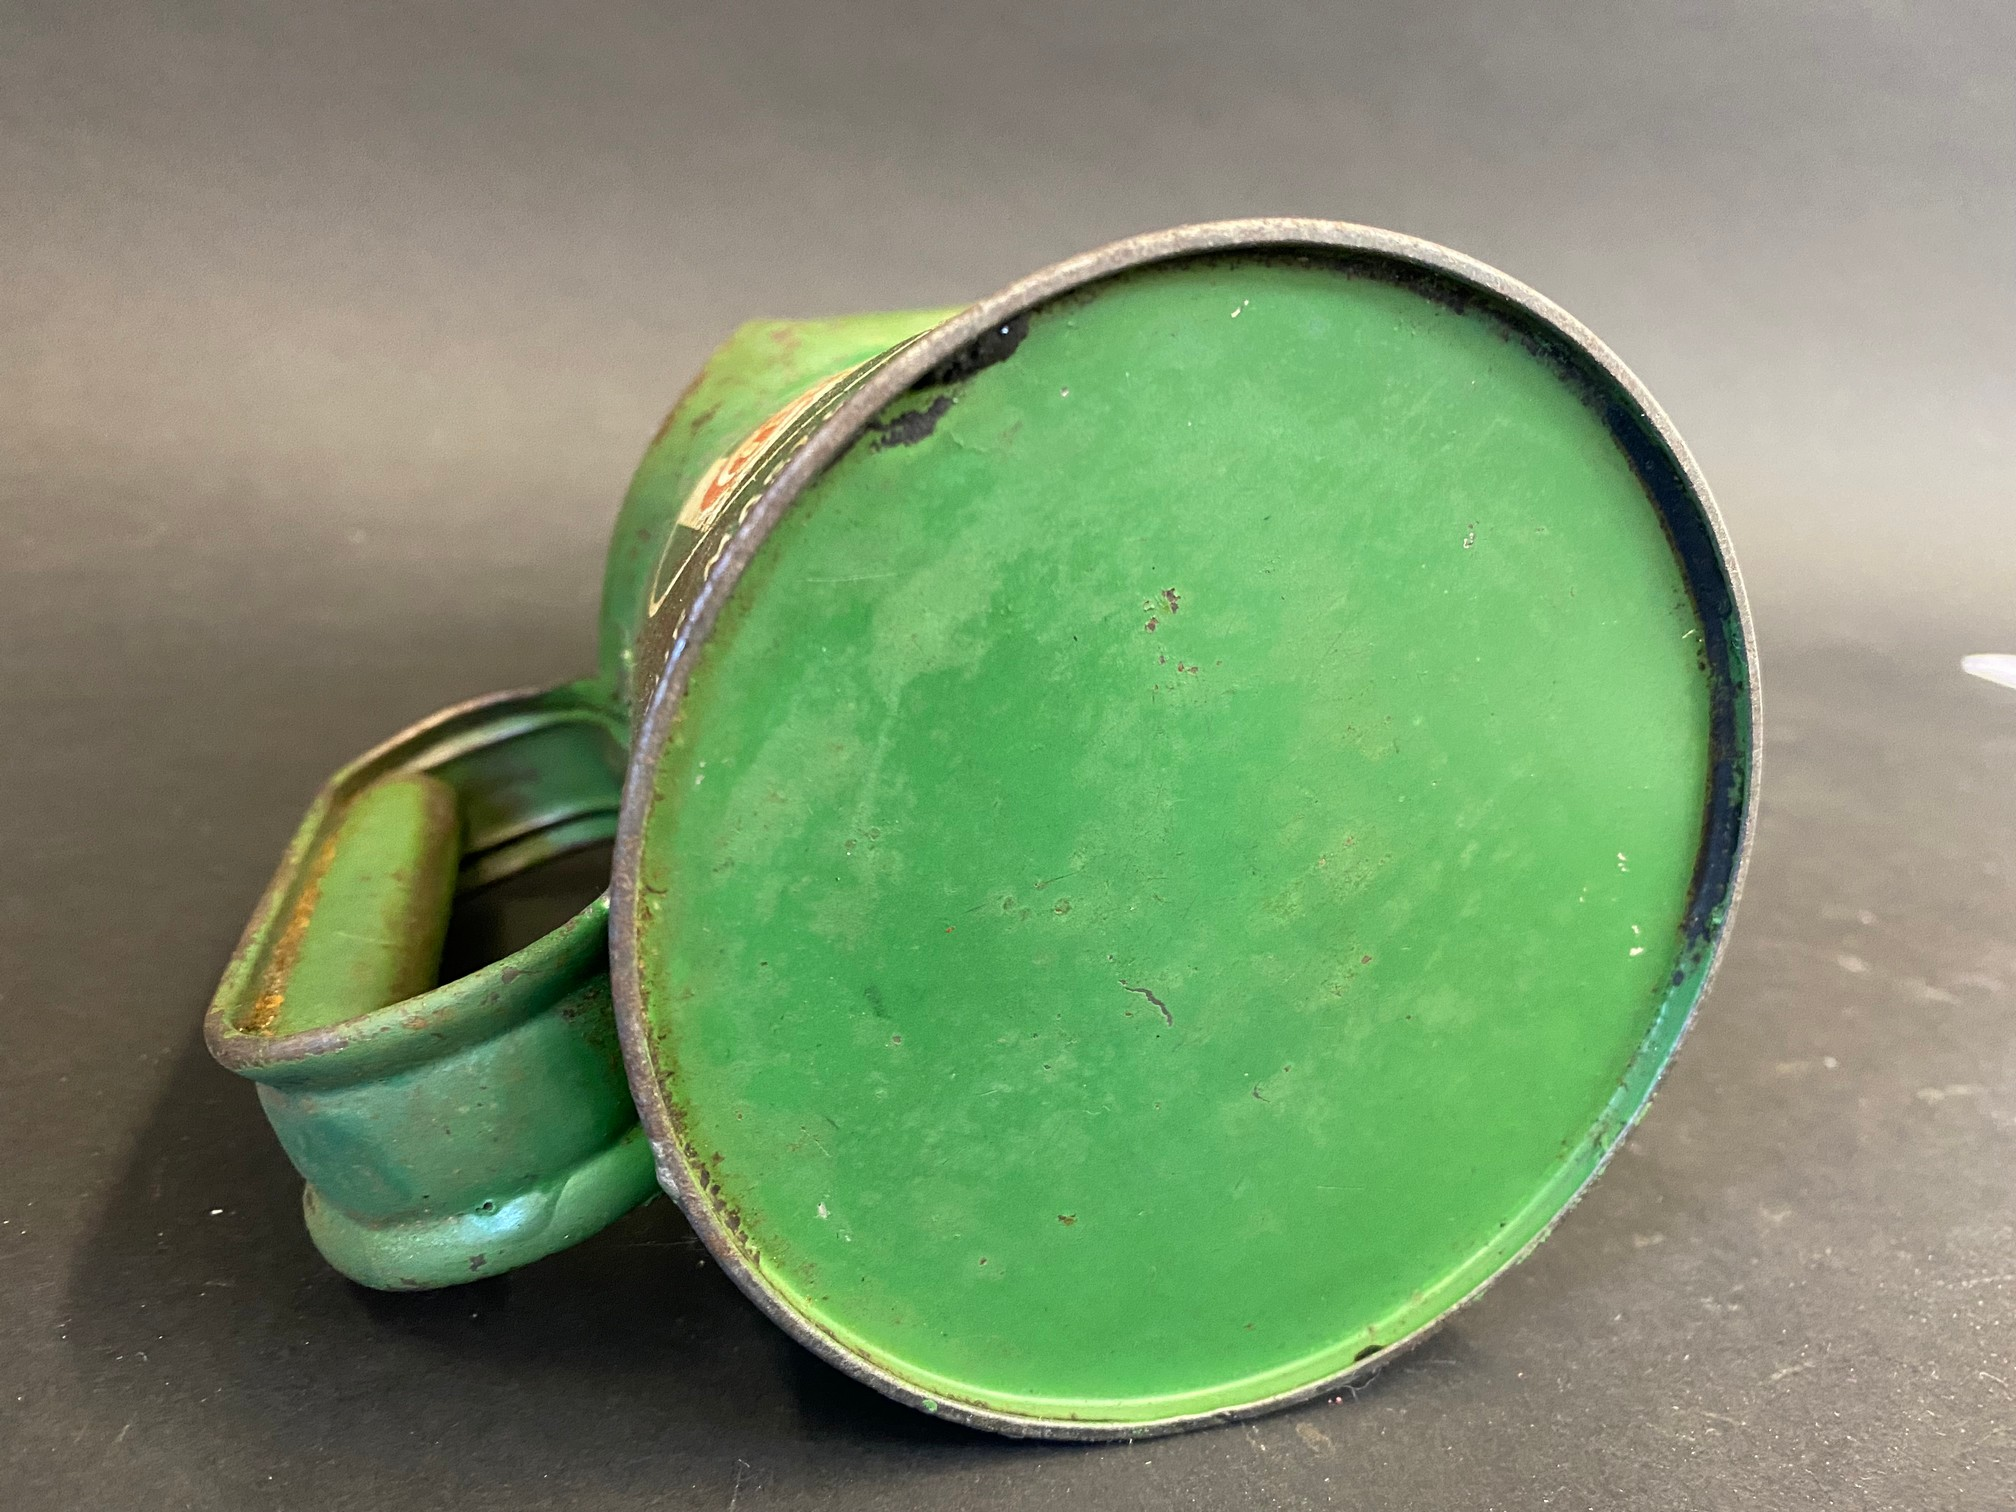 A Wakefield Castrol Motor Oil pint measure, dated 1955. - Image 4 of 4